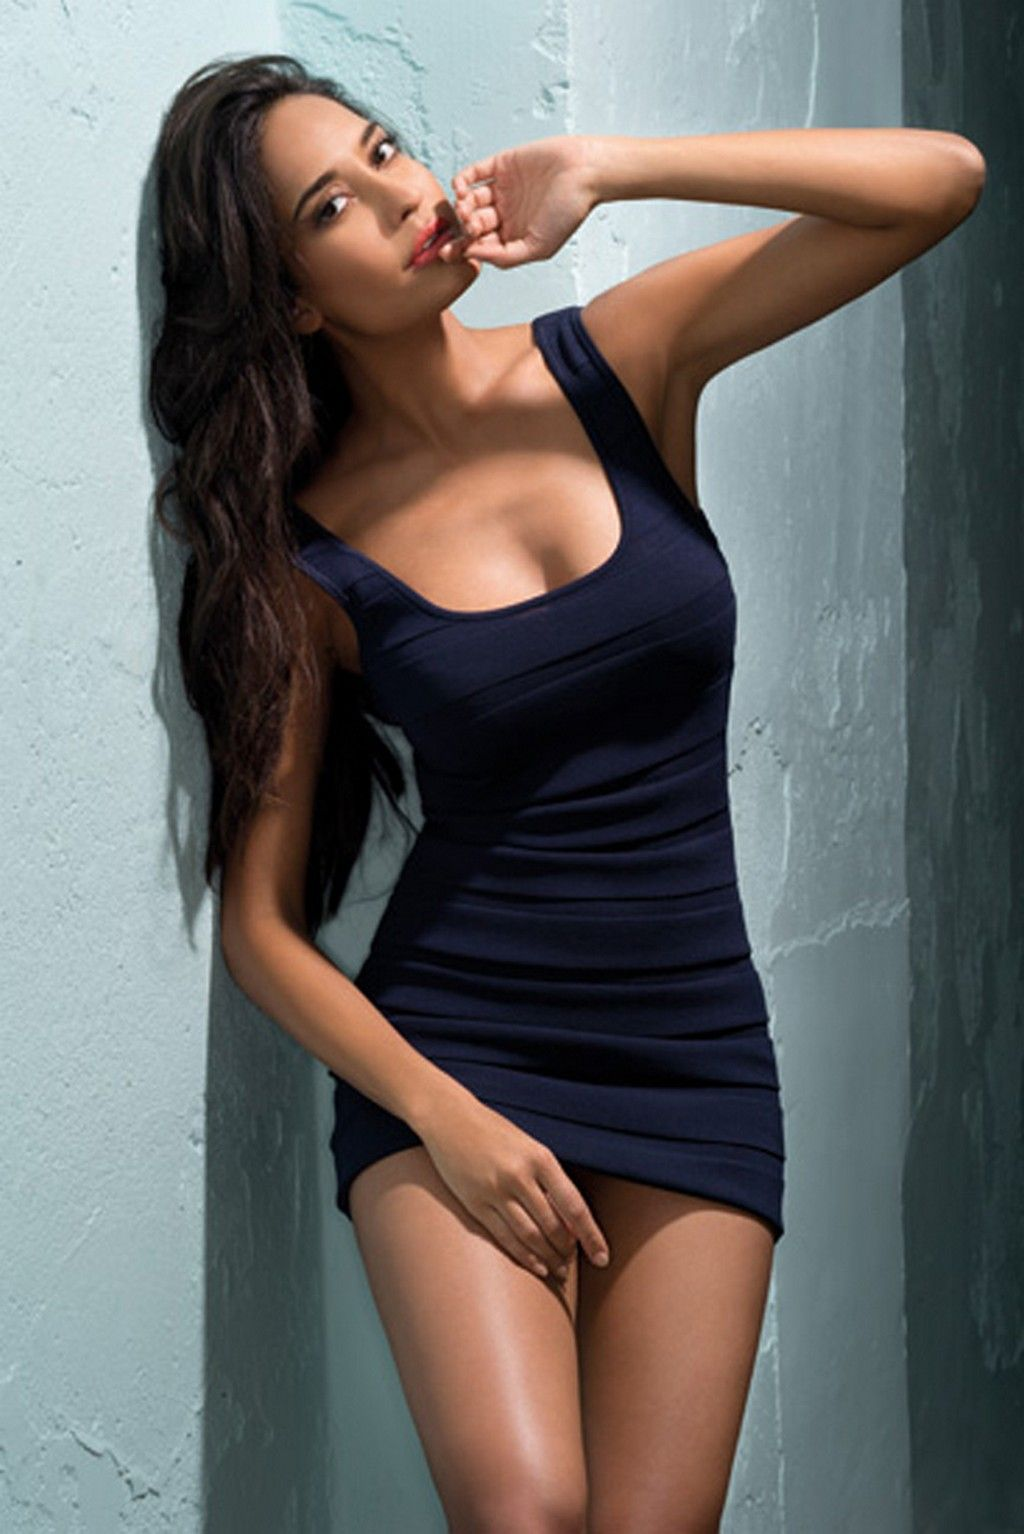 lisa haydon hot photoshoot | south indian actress | pinterest | lisa